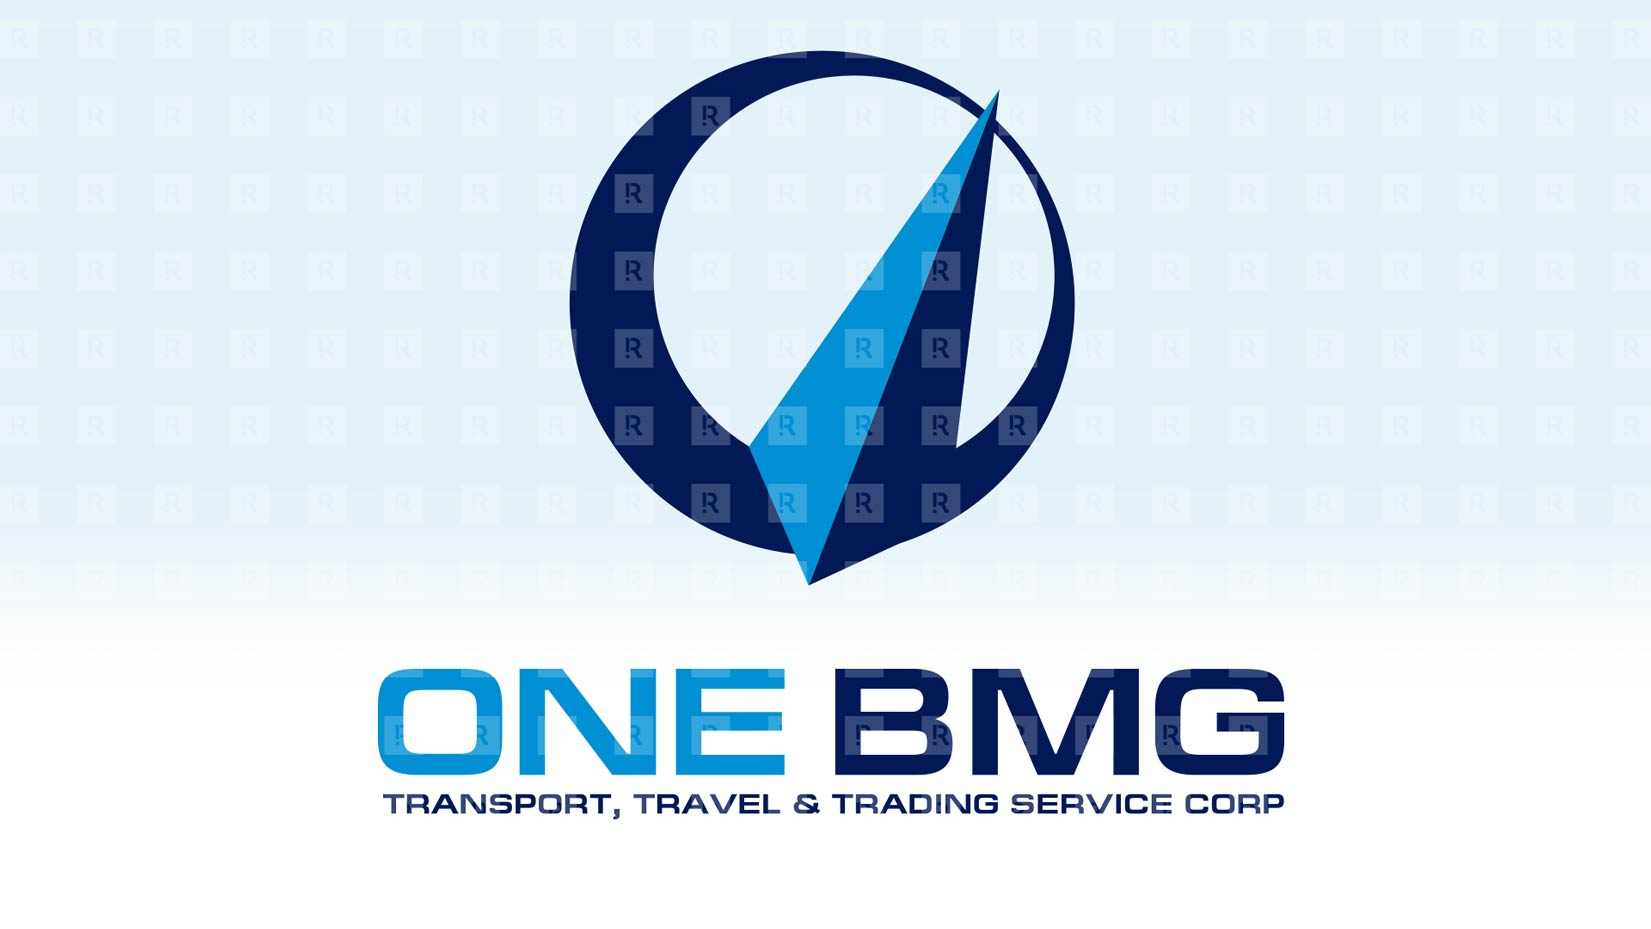 One BMG Corporate Identity